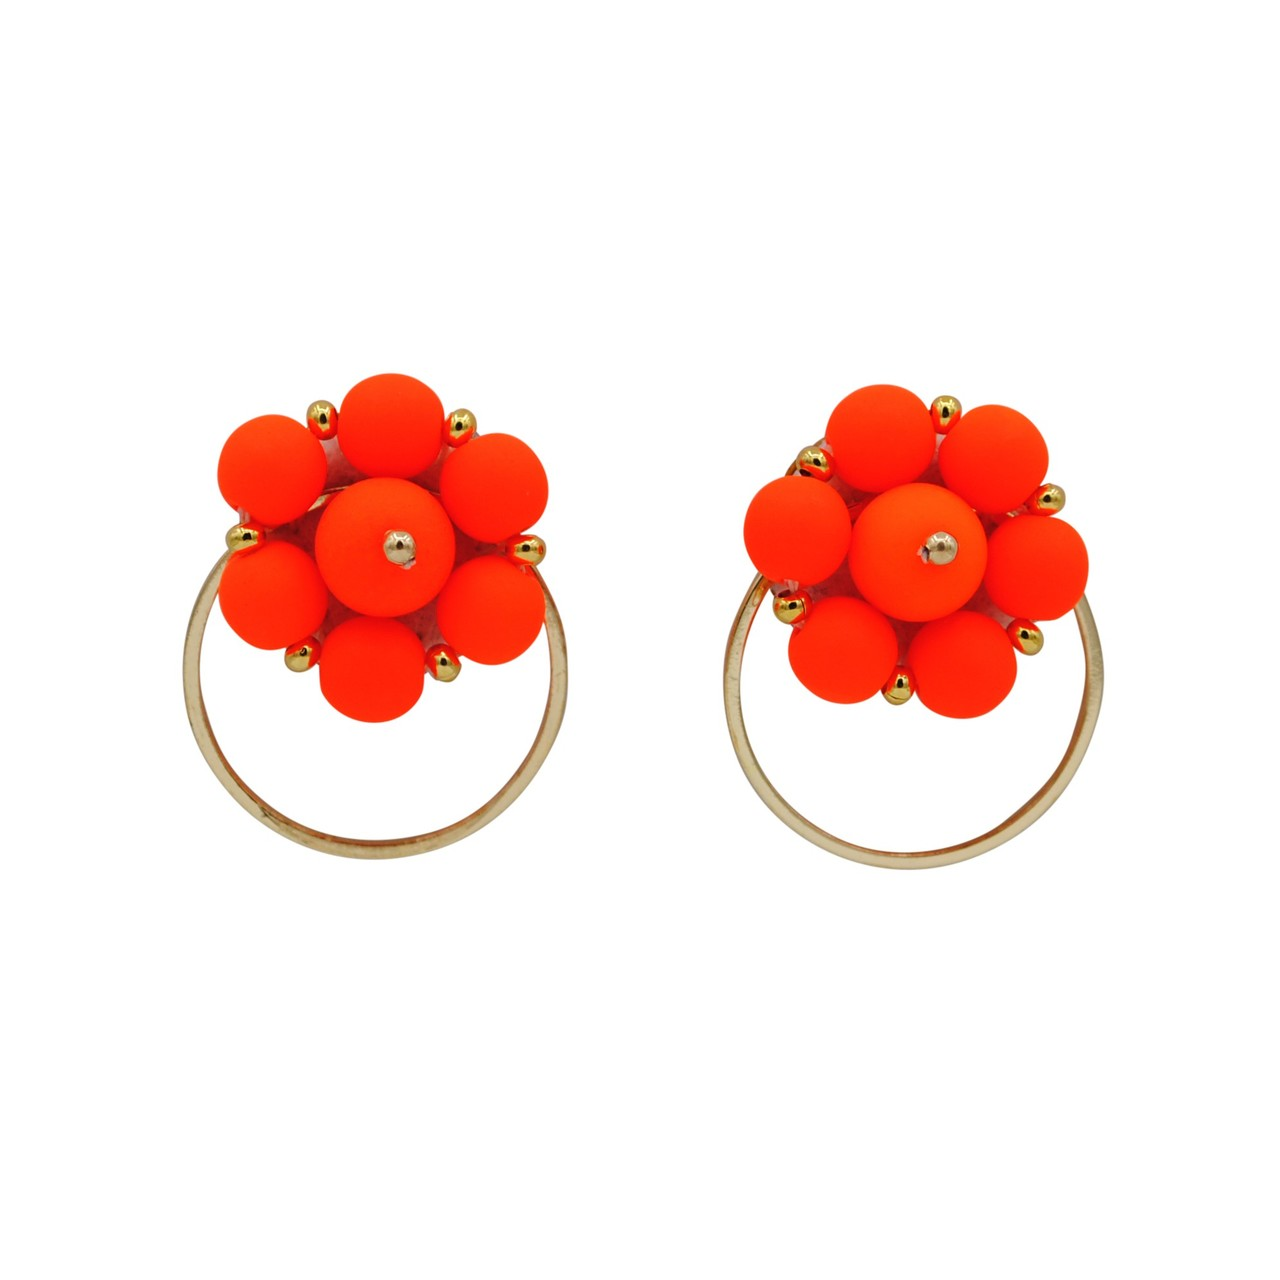 Forever Fiesta Hoop Earrings in Orange